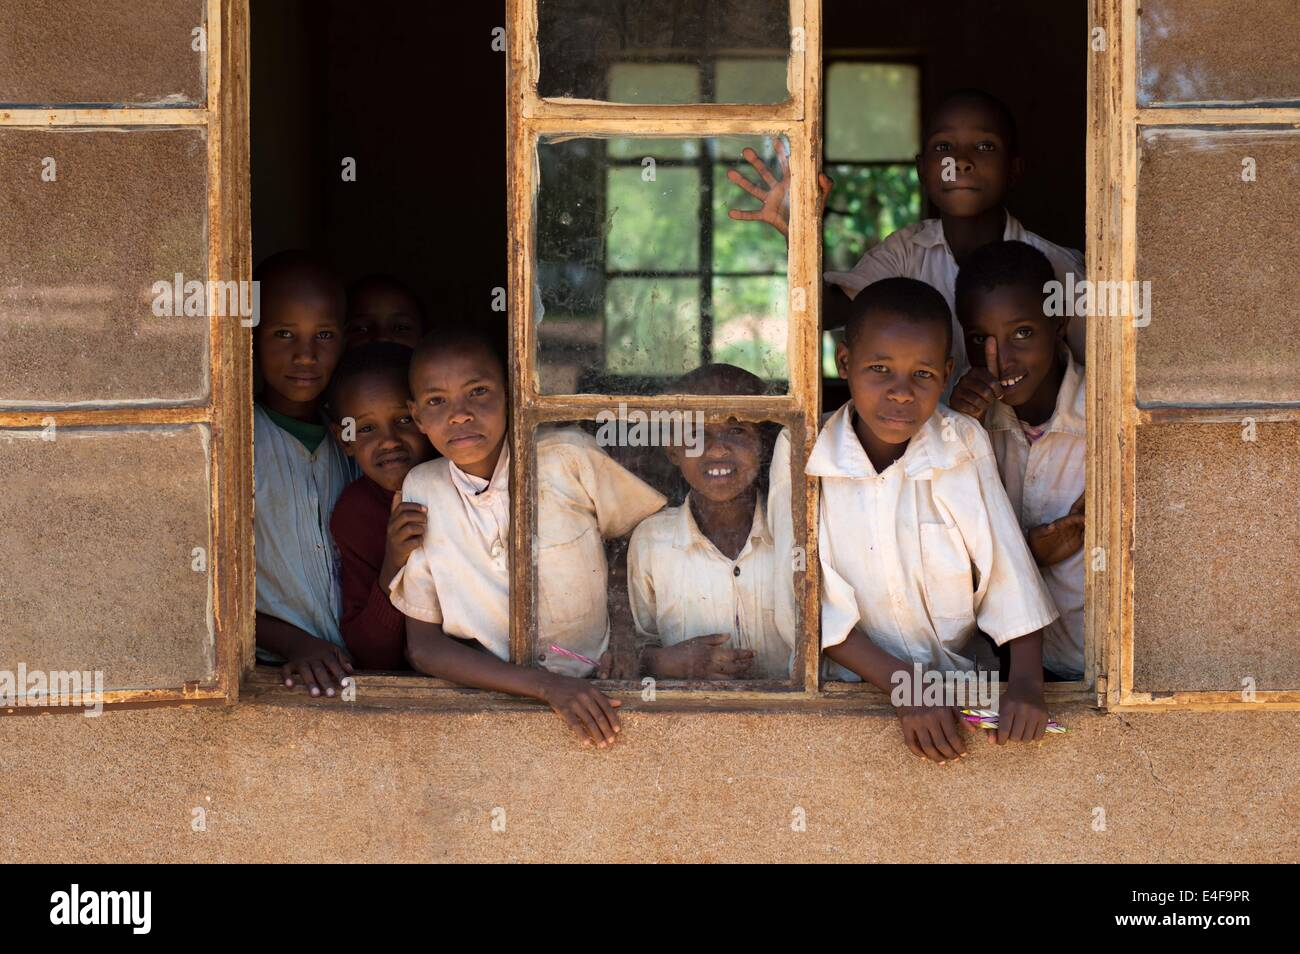 group portrait of children from a remote school in Tanzania, Africa looking out the window - Stock Image